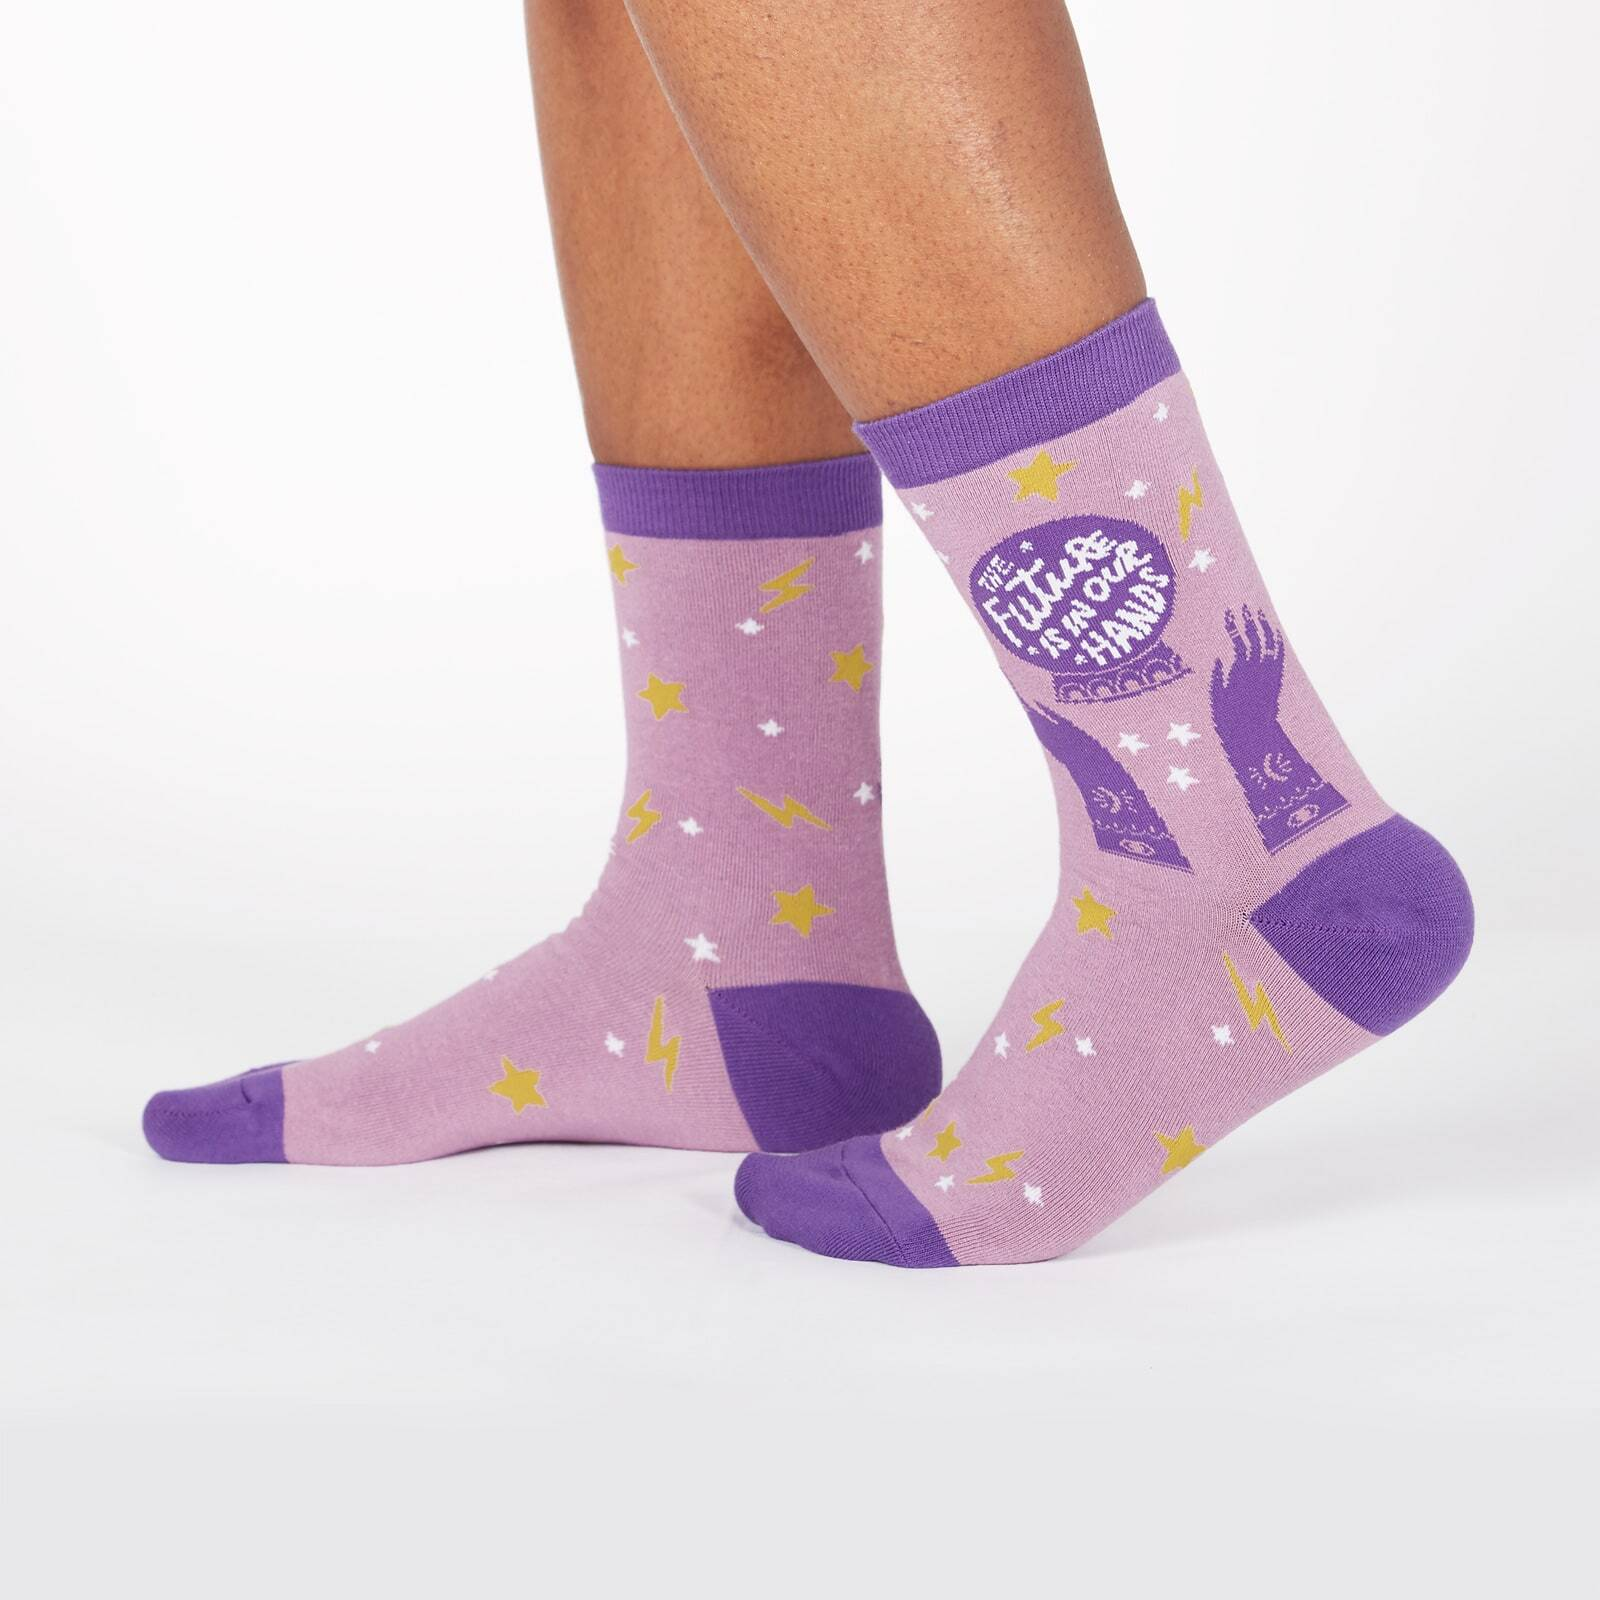 model wearing The Future Is in Our Hands - Crystal Ball Magical Crew Socks Purple - Women's